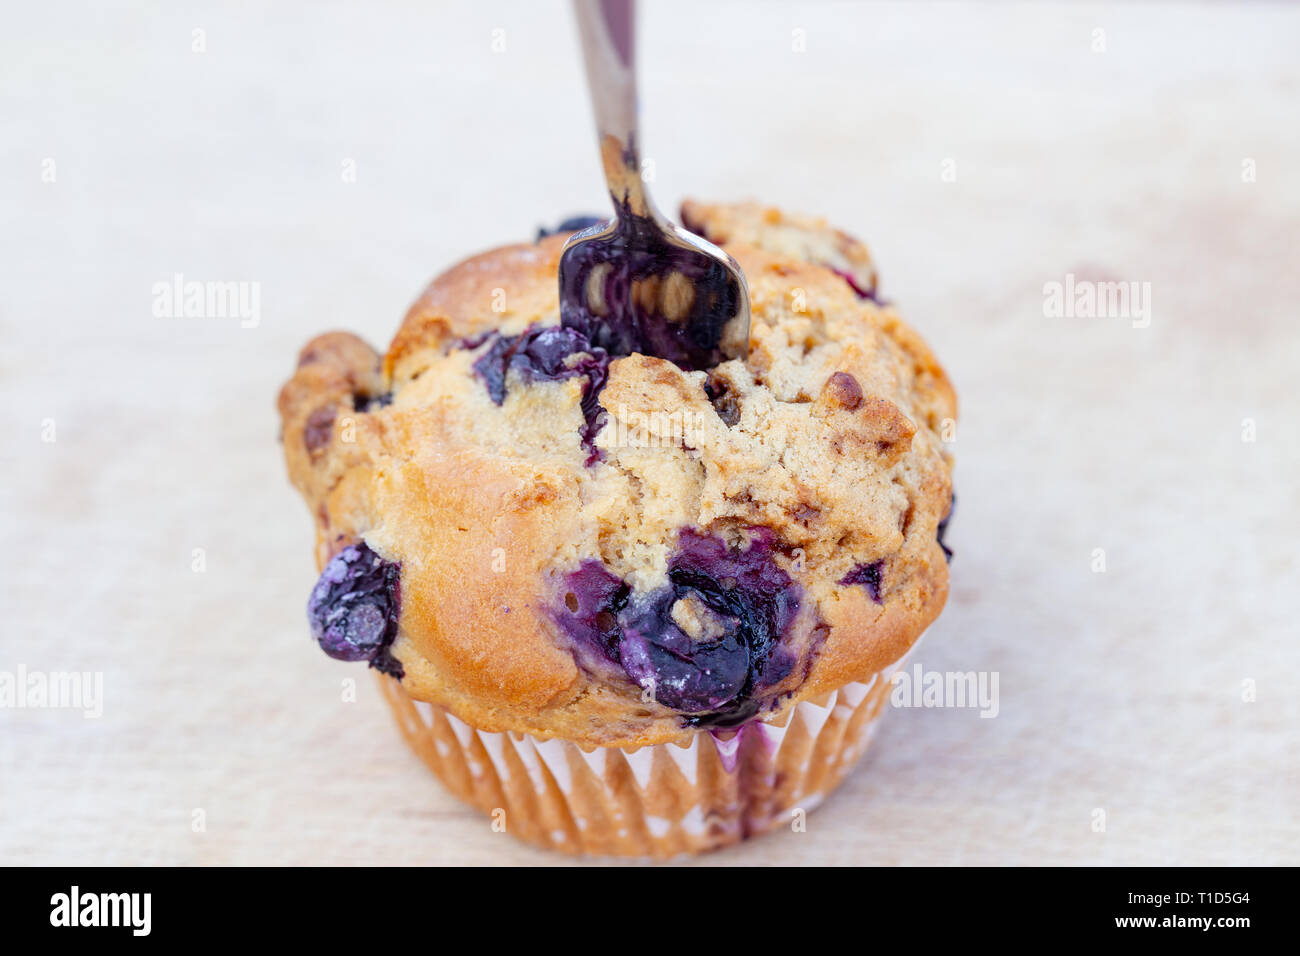 Homemade vegan blueberry muffin presented on a wooden plate Stock Photo